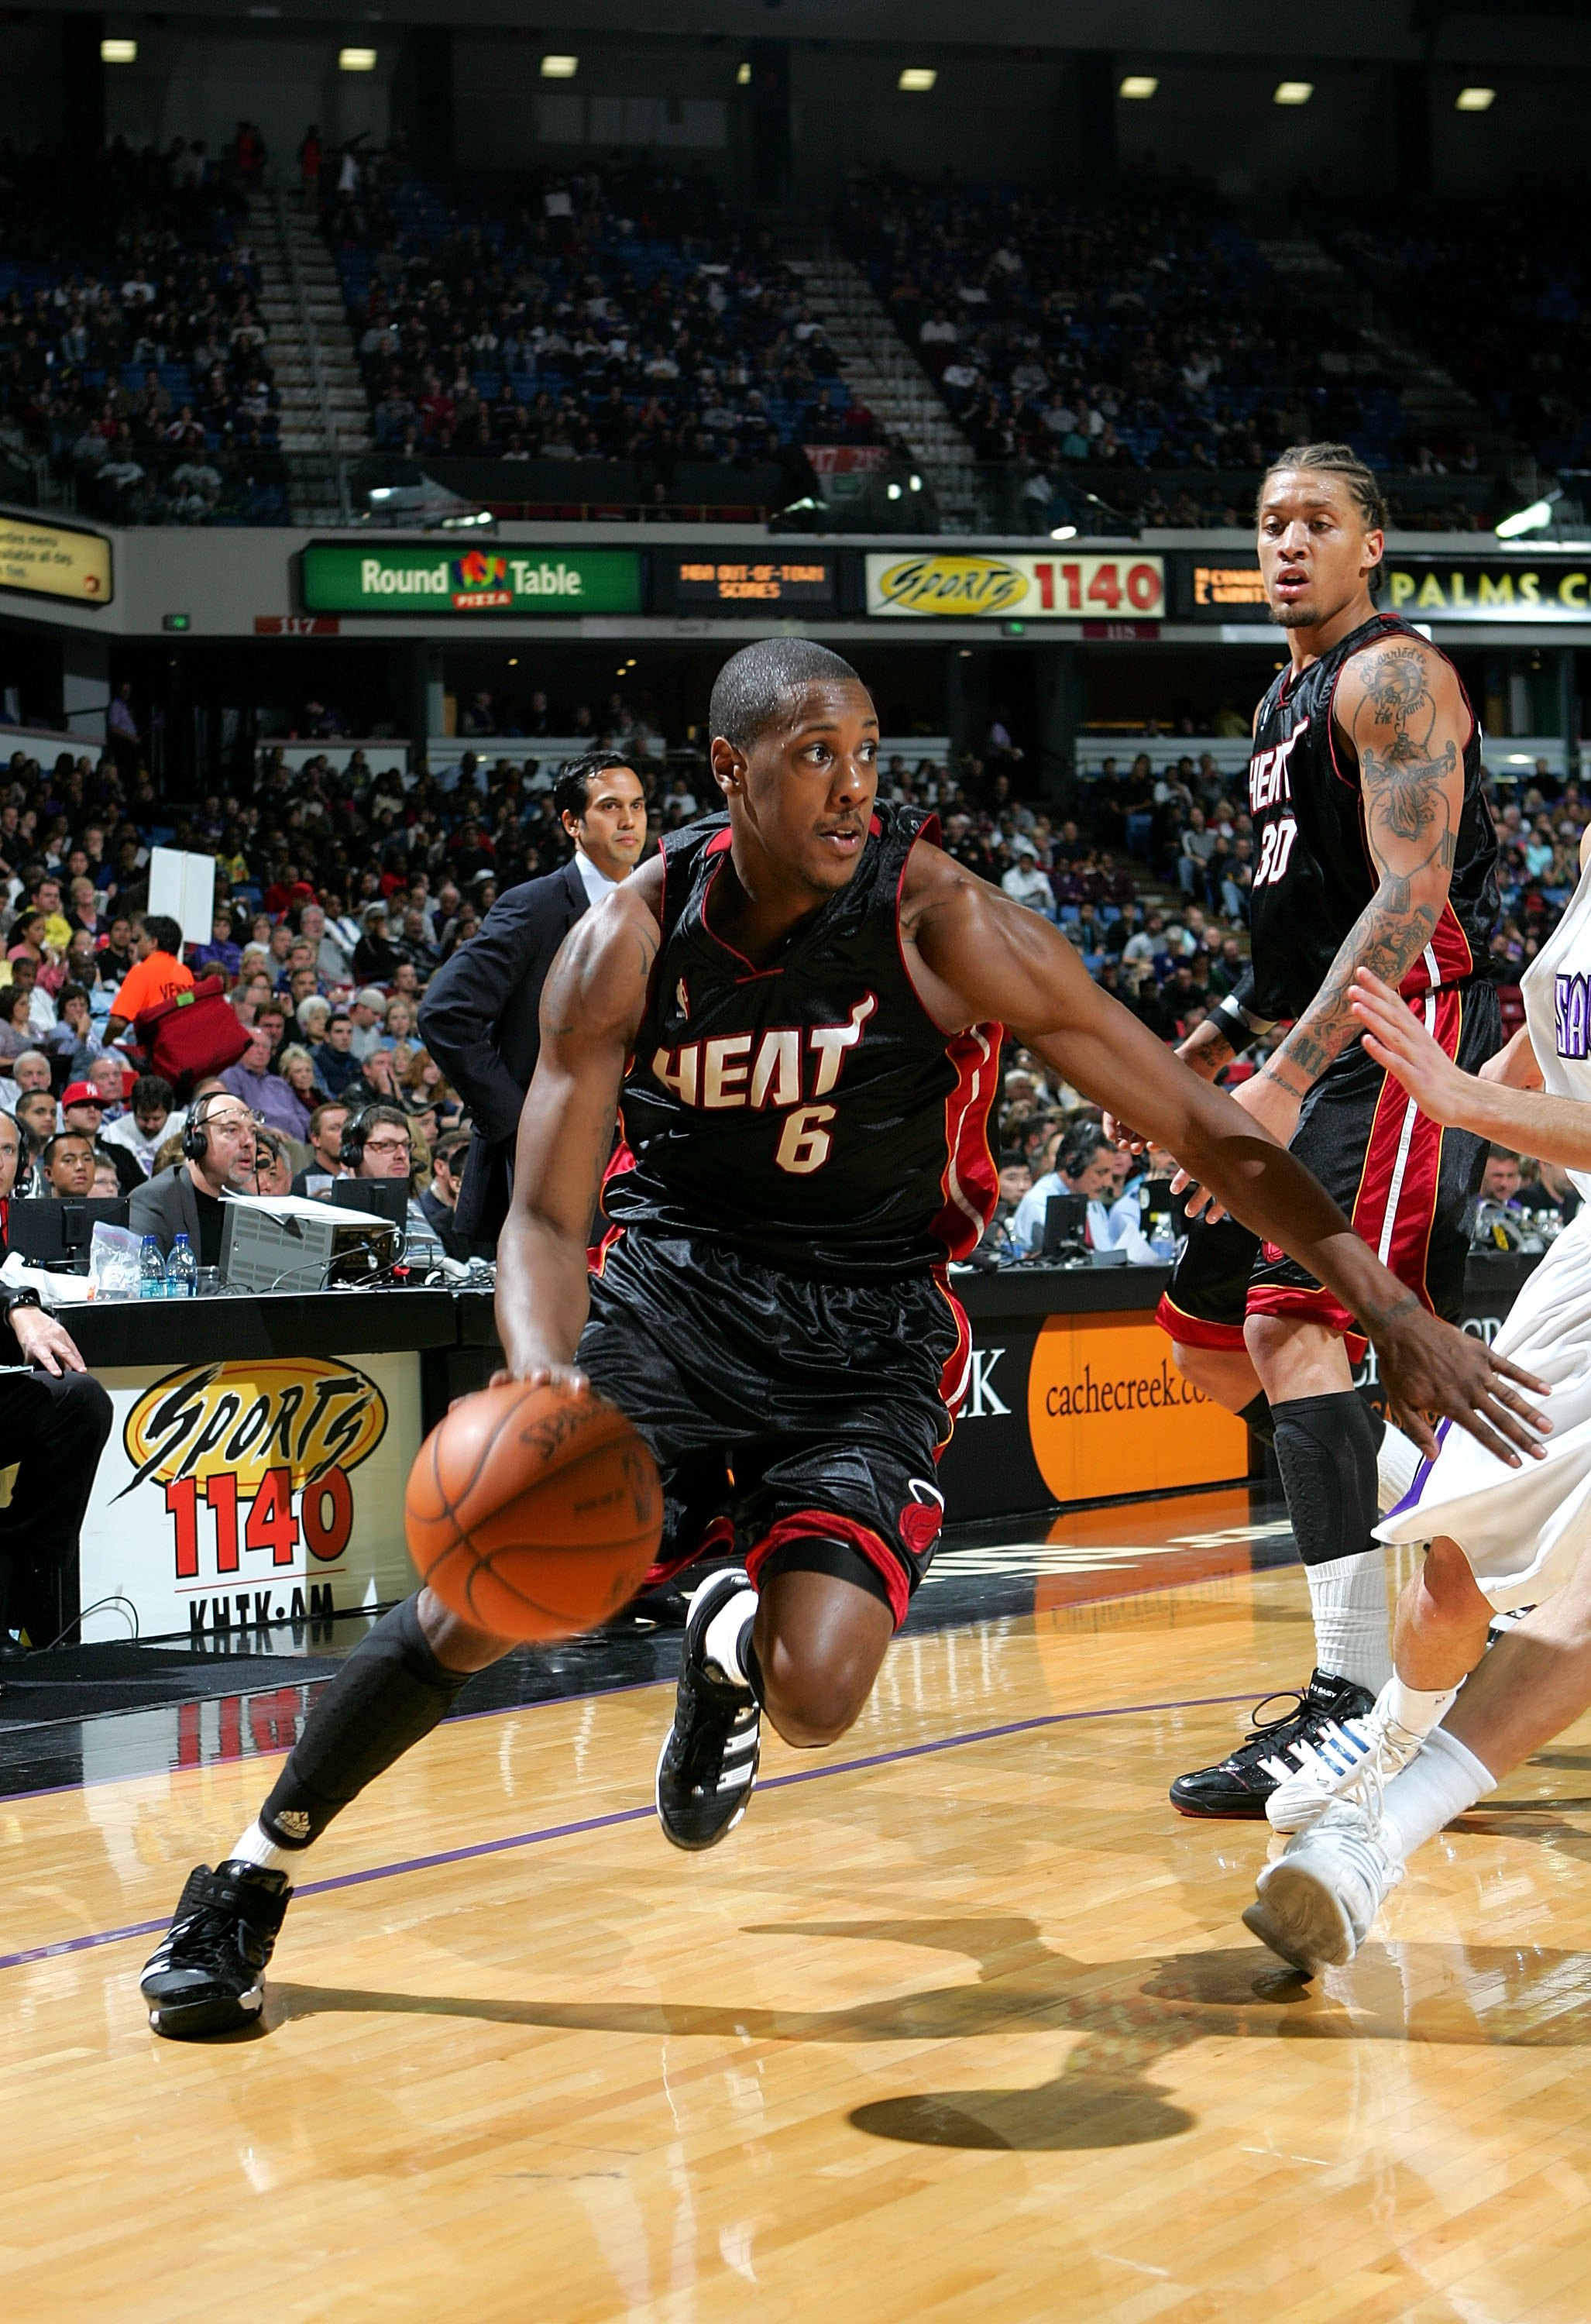 SACRAMENTO, CA - DECEMBER 06:  Mario Chalmers #6 of the Miami Heat in action during their game against the Sacramento Kings at ARCO Arena on December 6, 2009 in Sacramento, California.  NOTE TO USER: User expressly acknowledges and agrees that, by downloa